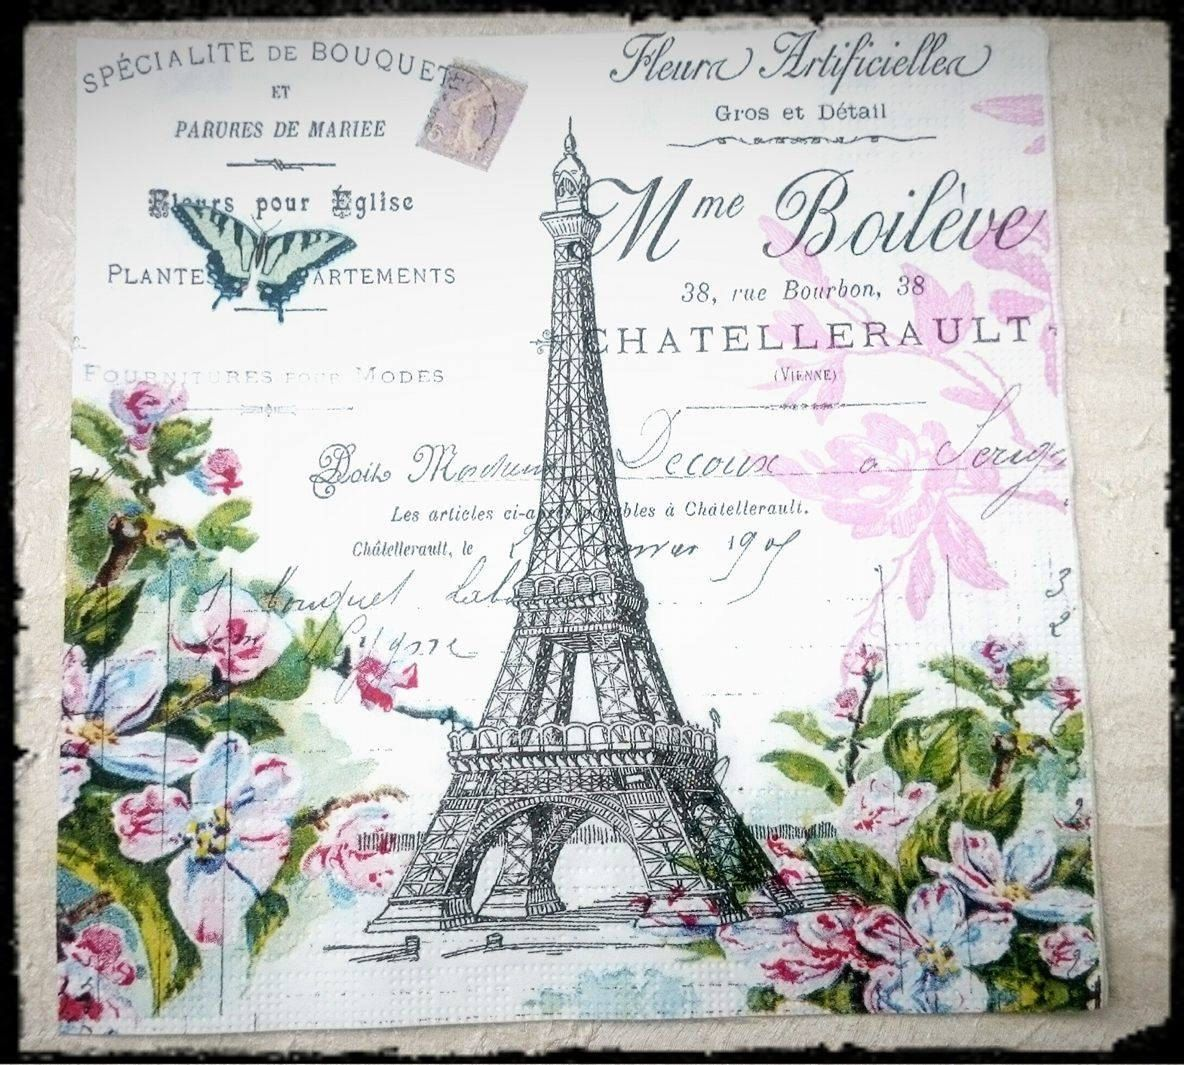 33 x 33cm 4 Individual Napkins for Craft and Napkin Art. 3-ply 4 Paper Napkins for Decoupage Autumn Gardening